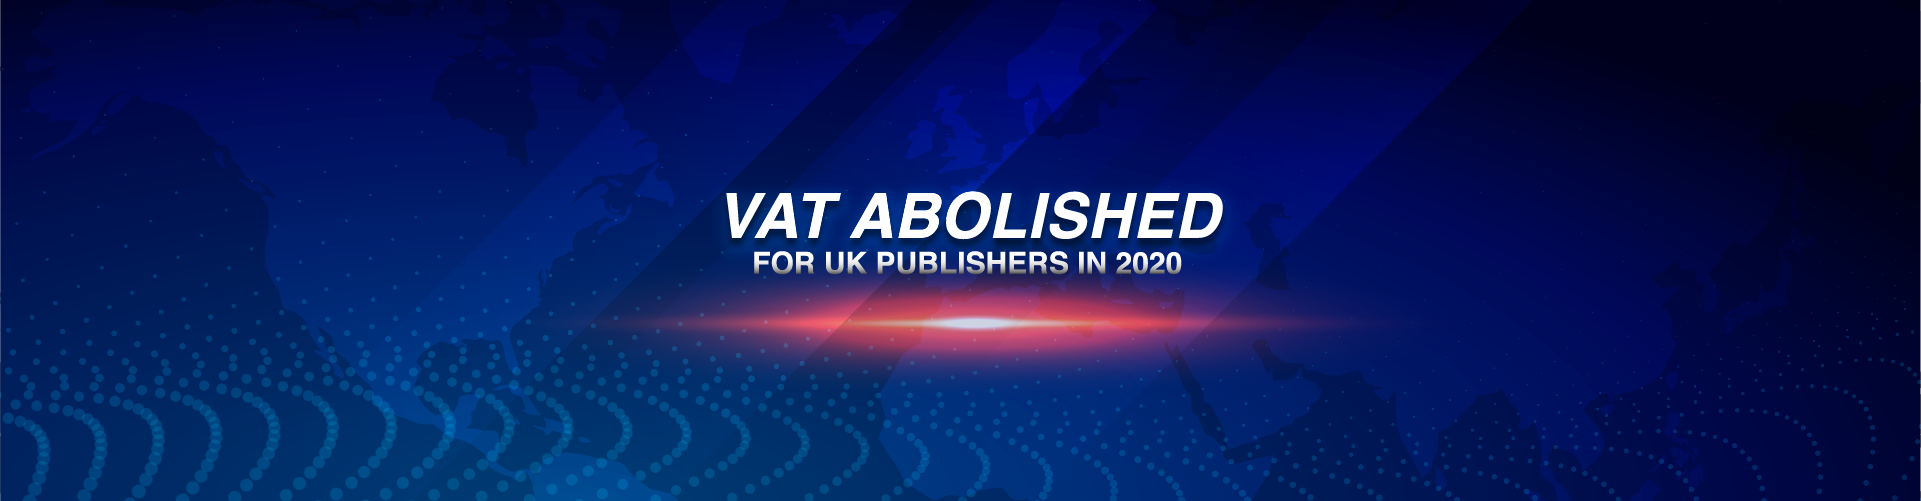 Header image of Digital Edition Tax – VAT Abolished for UK Publishers in 2020